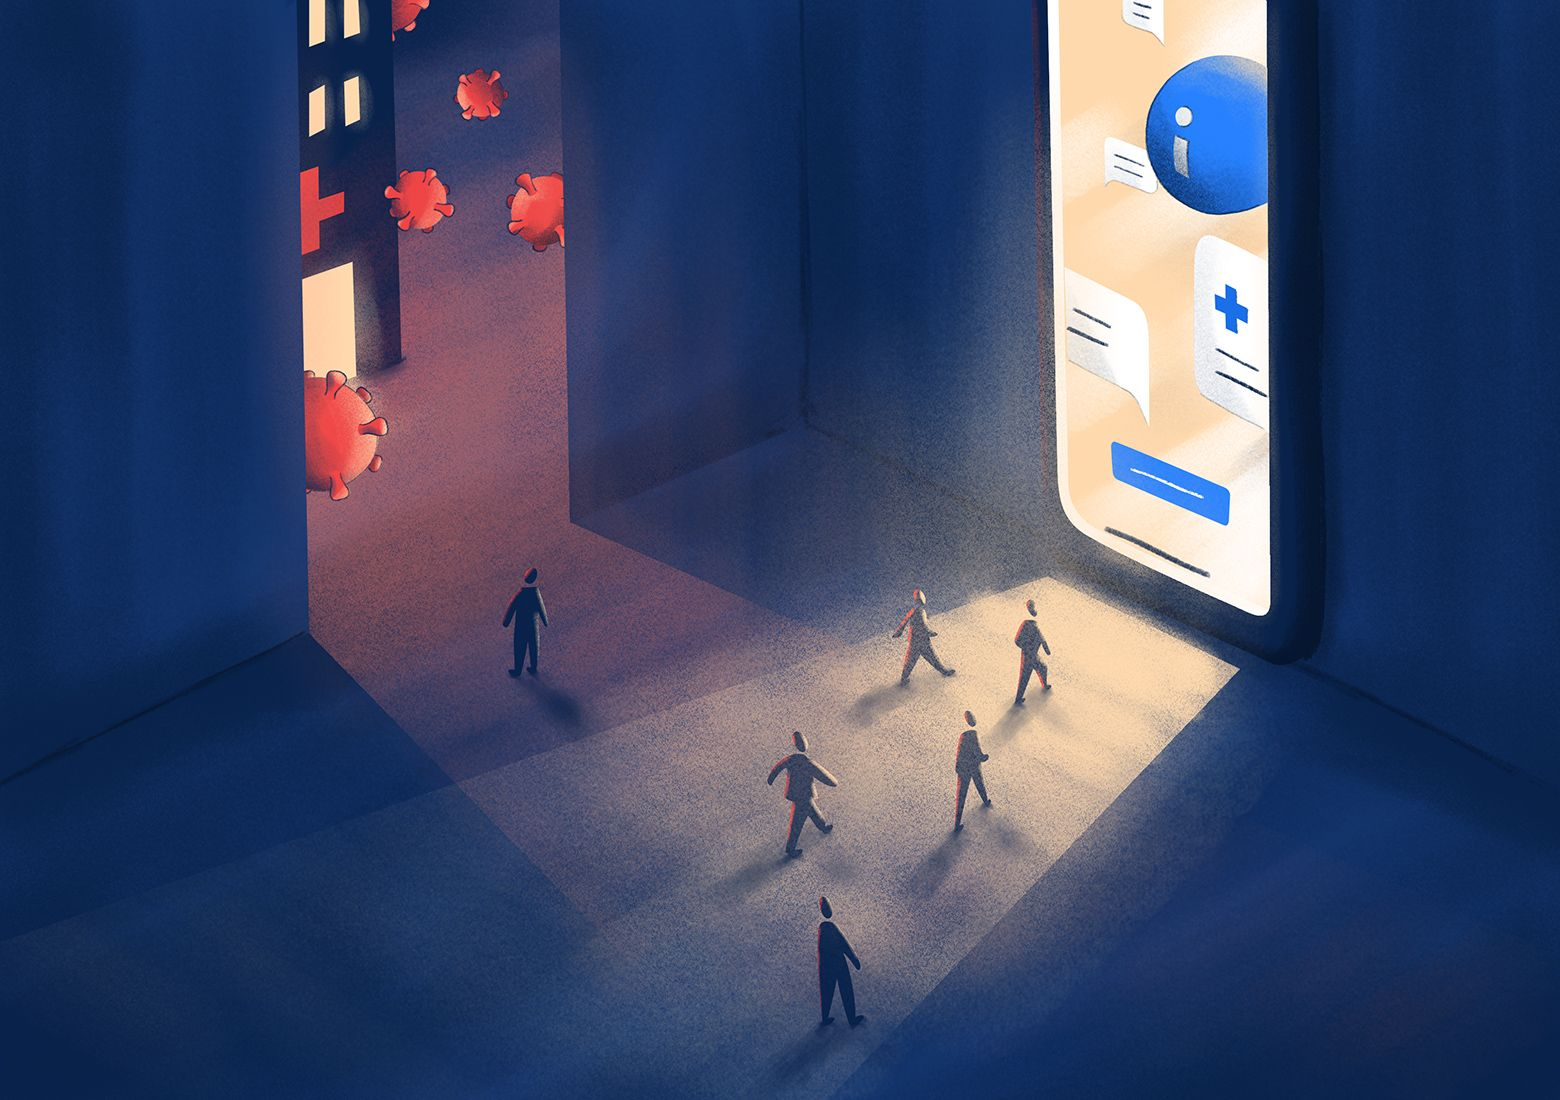 Symptom checkers become gateways to medical services. Illustration by Tomek Tuz.